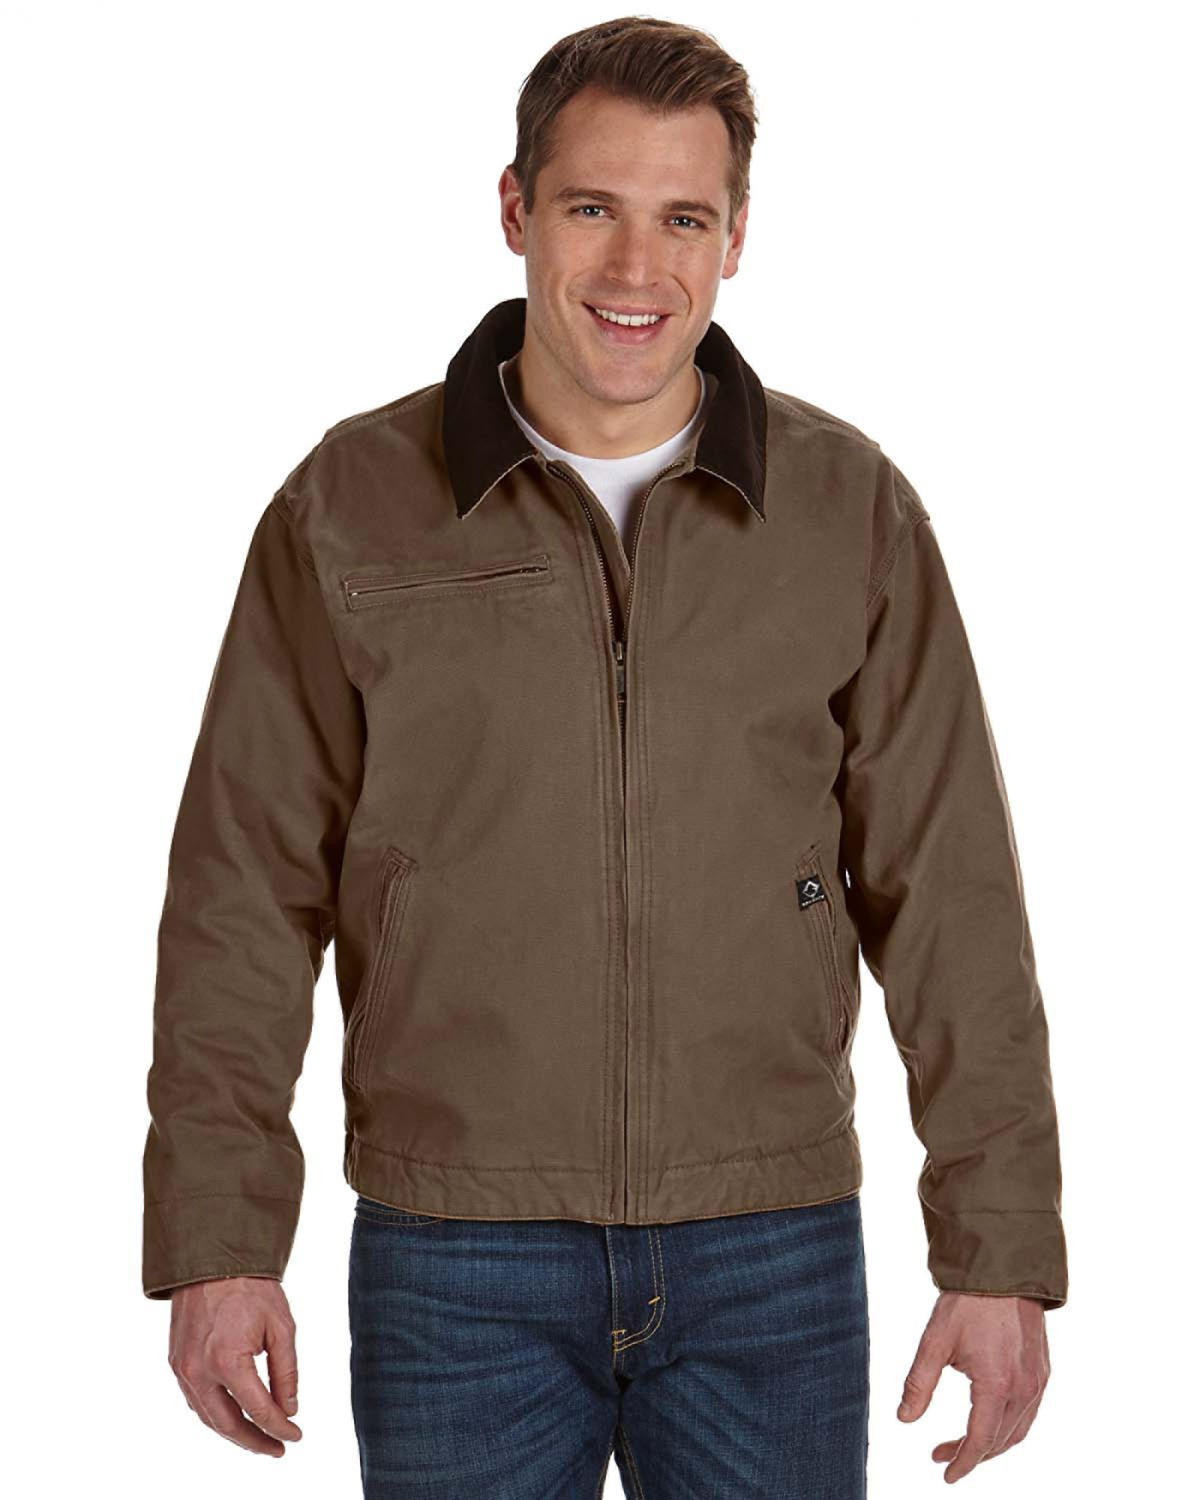 DRI DUCK 5087 Outlaw Boulder Cloth Jacket with Corduroy Collar